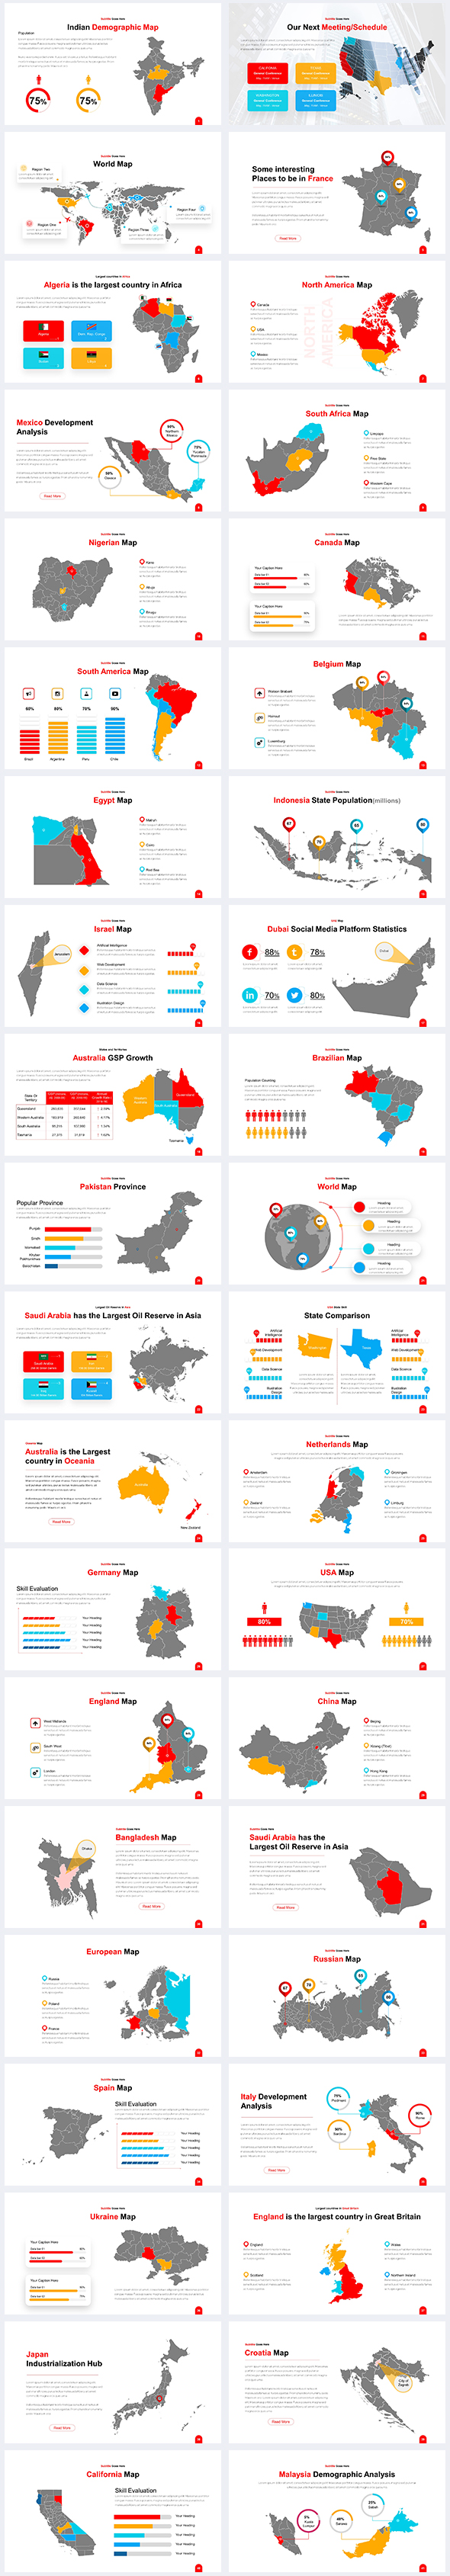 Maps-Infographic-Power-Point-Template